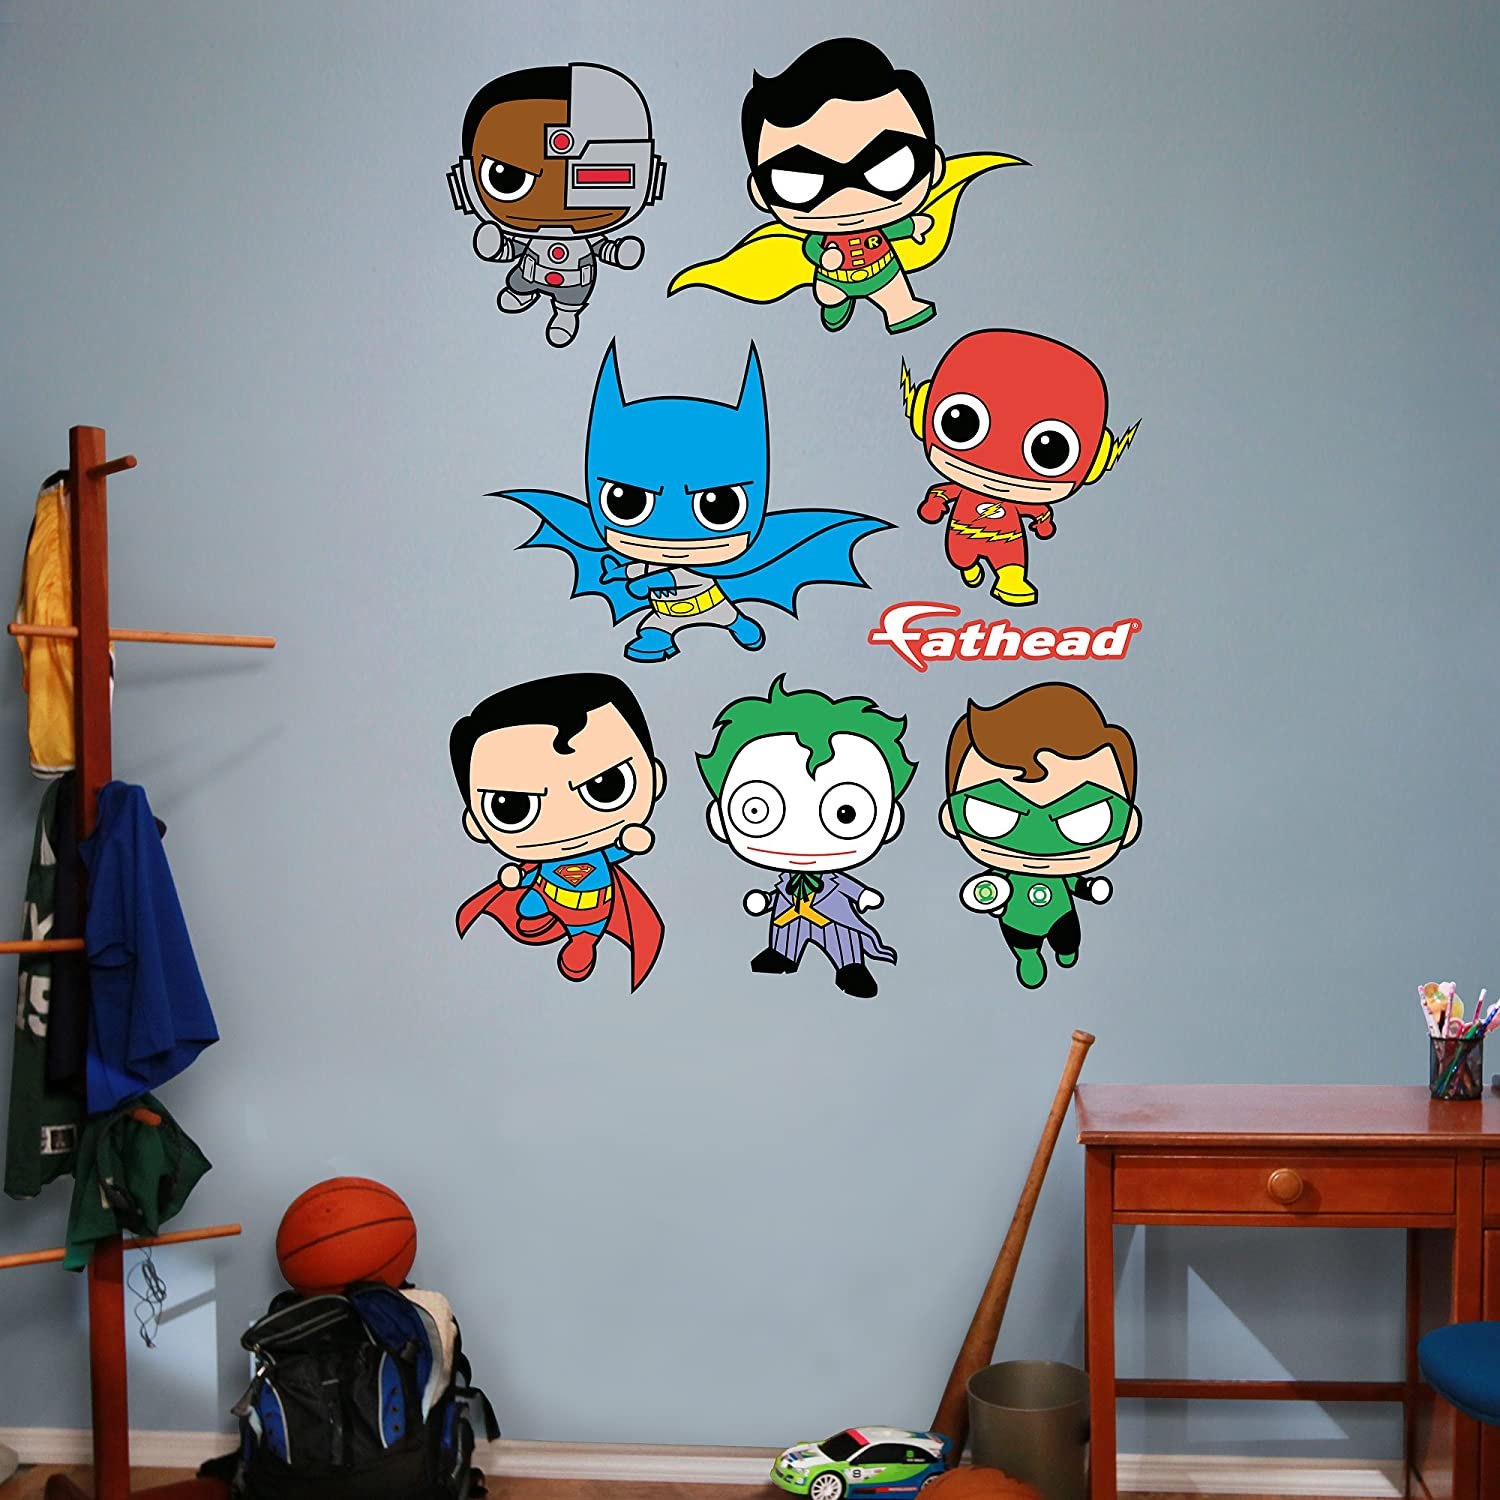 amazon com fathead dc comics kids collection vinyl decals home amazon com fathead dc comics kids collection vinyl decals home kitchen